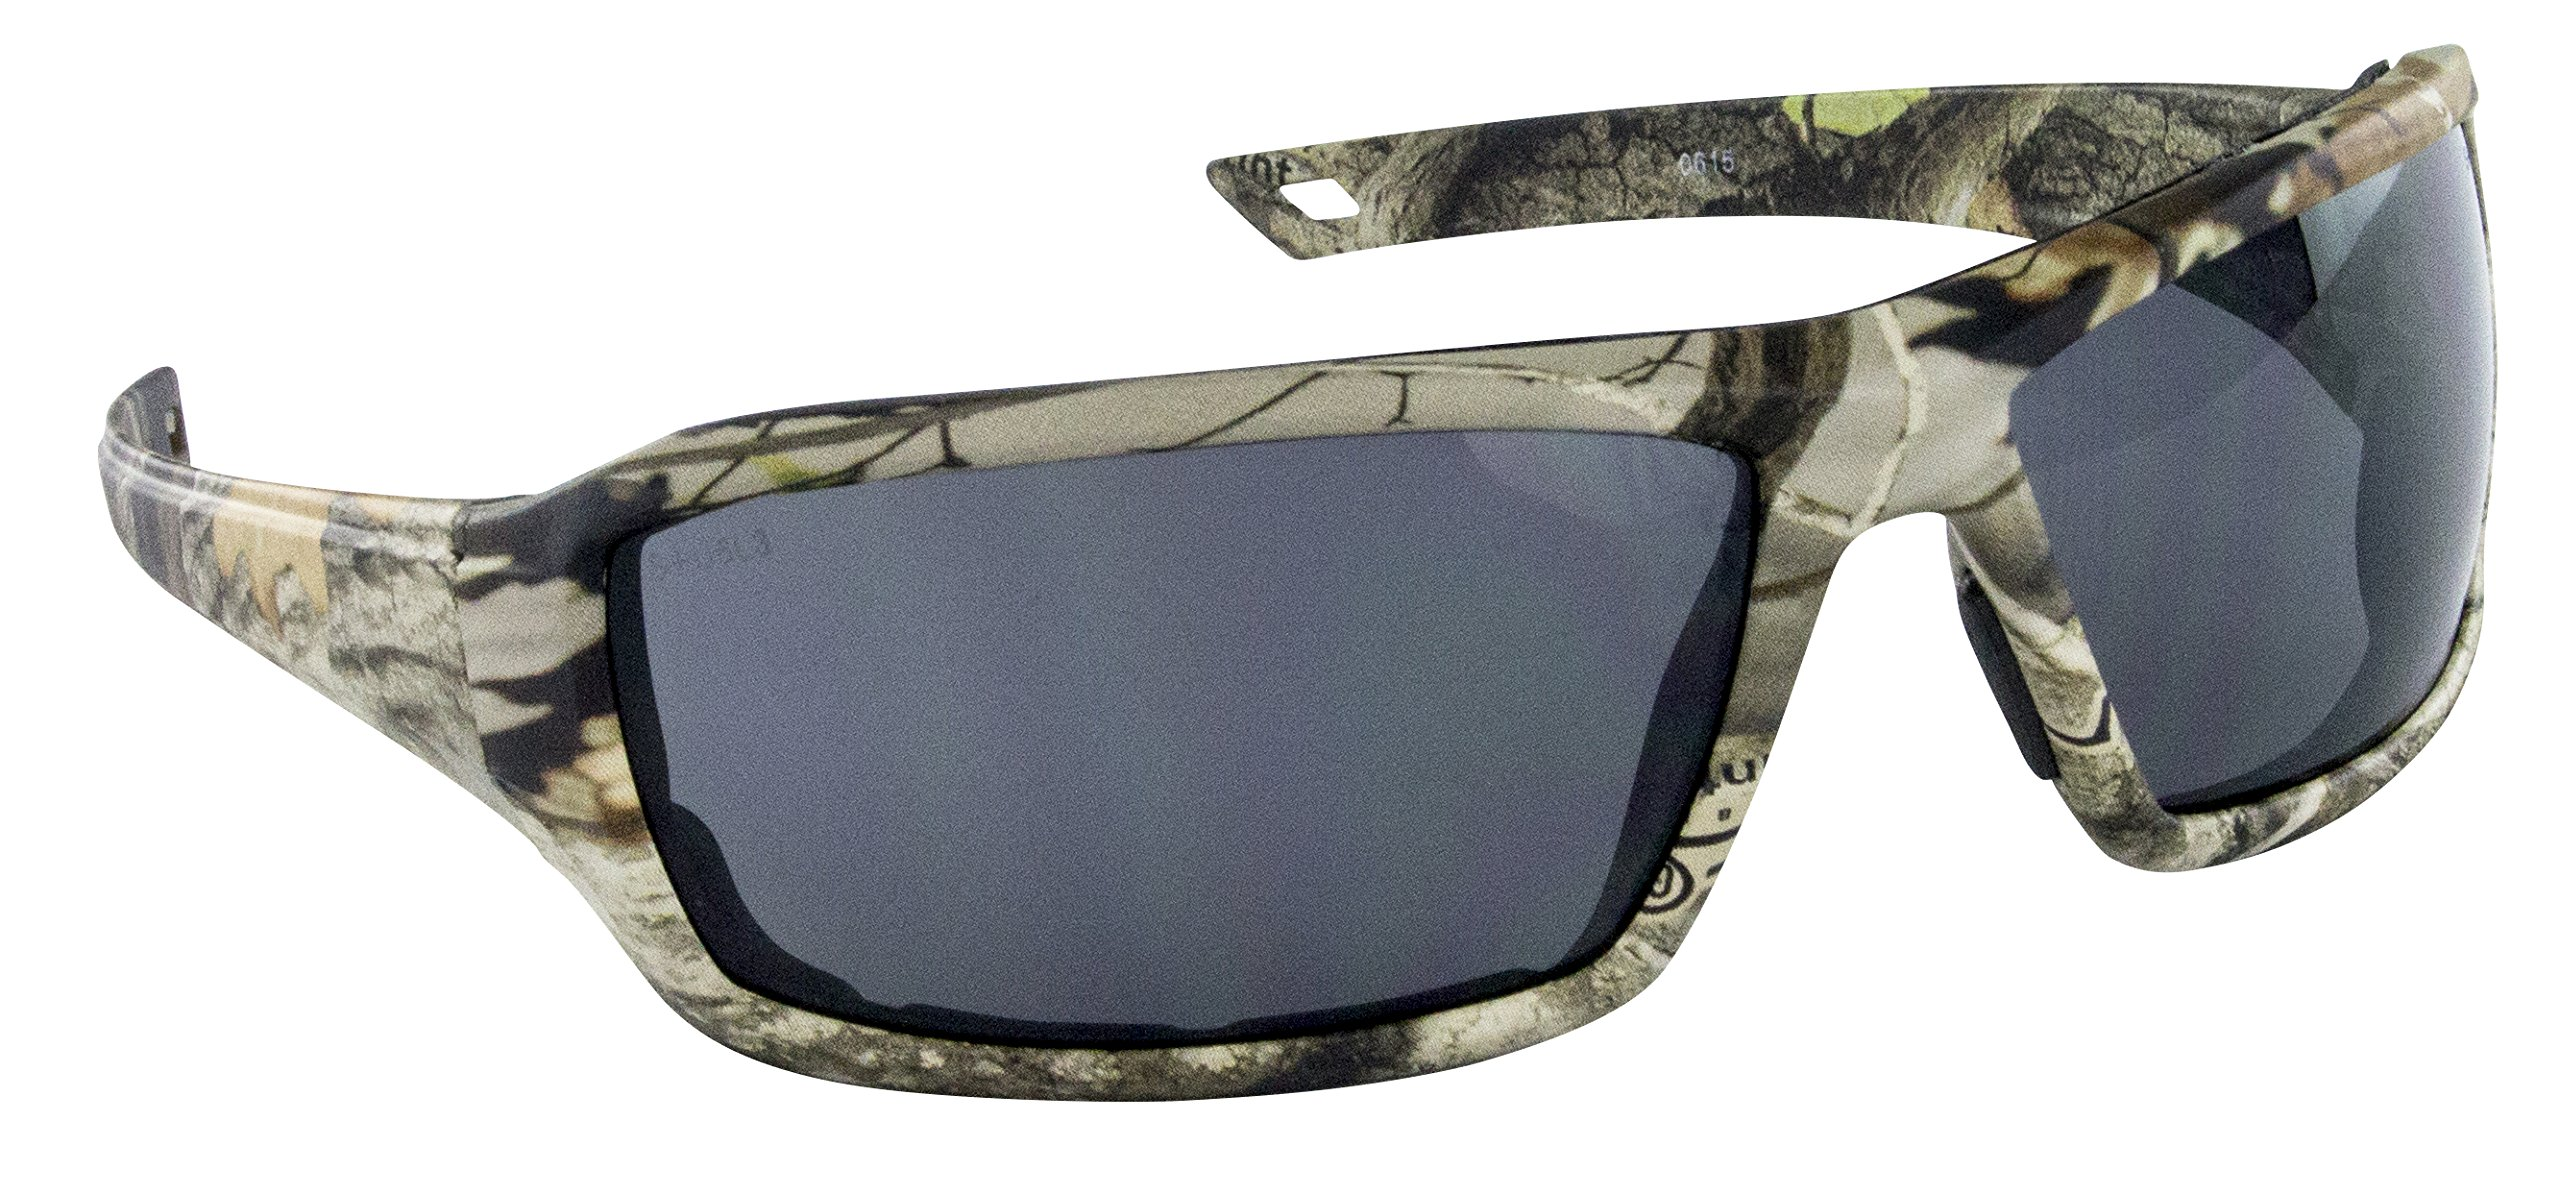 SAS Safety 5550-02 Camo Safety Glasses with Grey Lens, Dry Forest